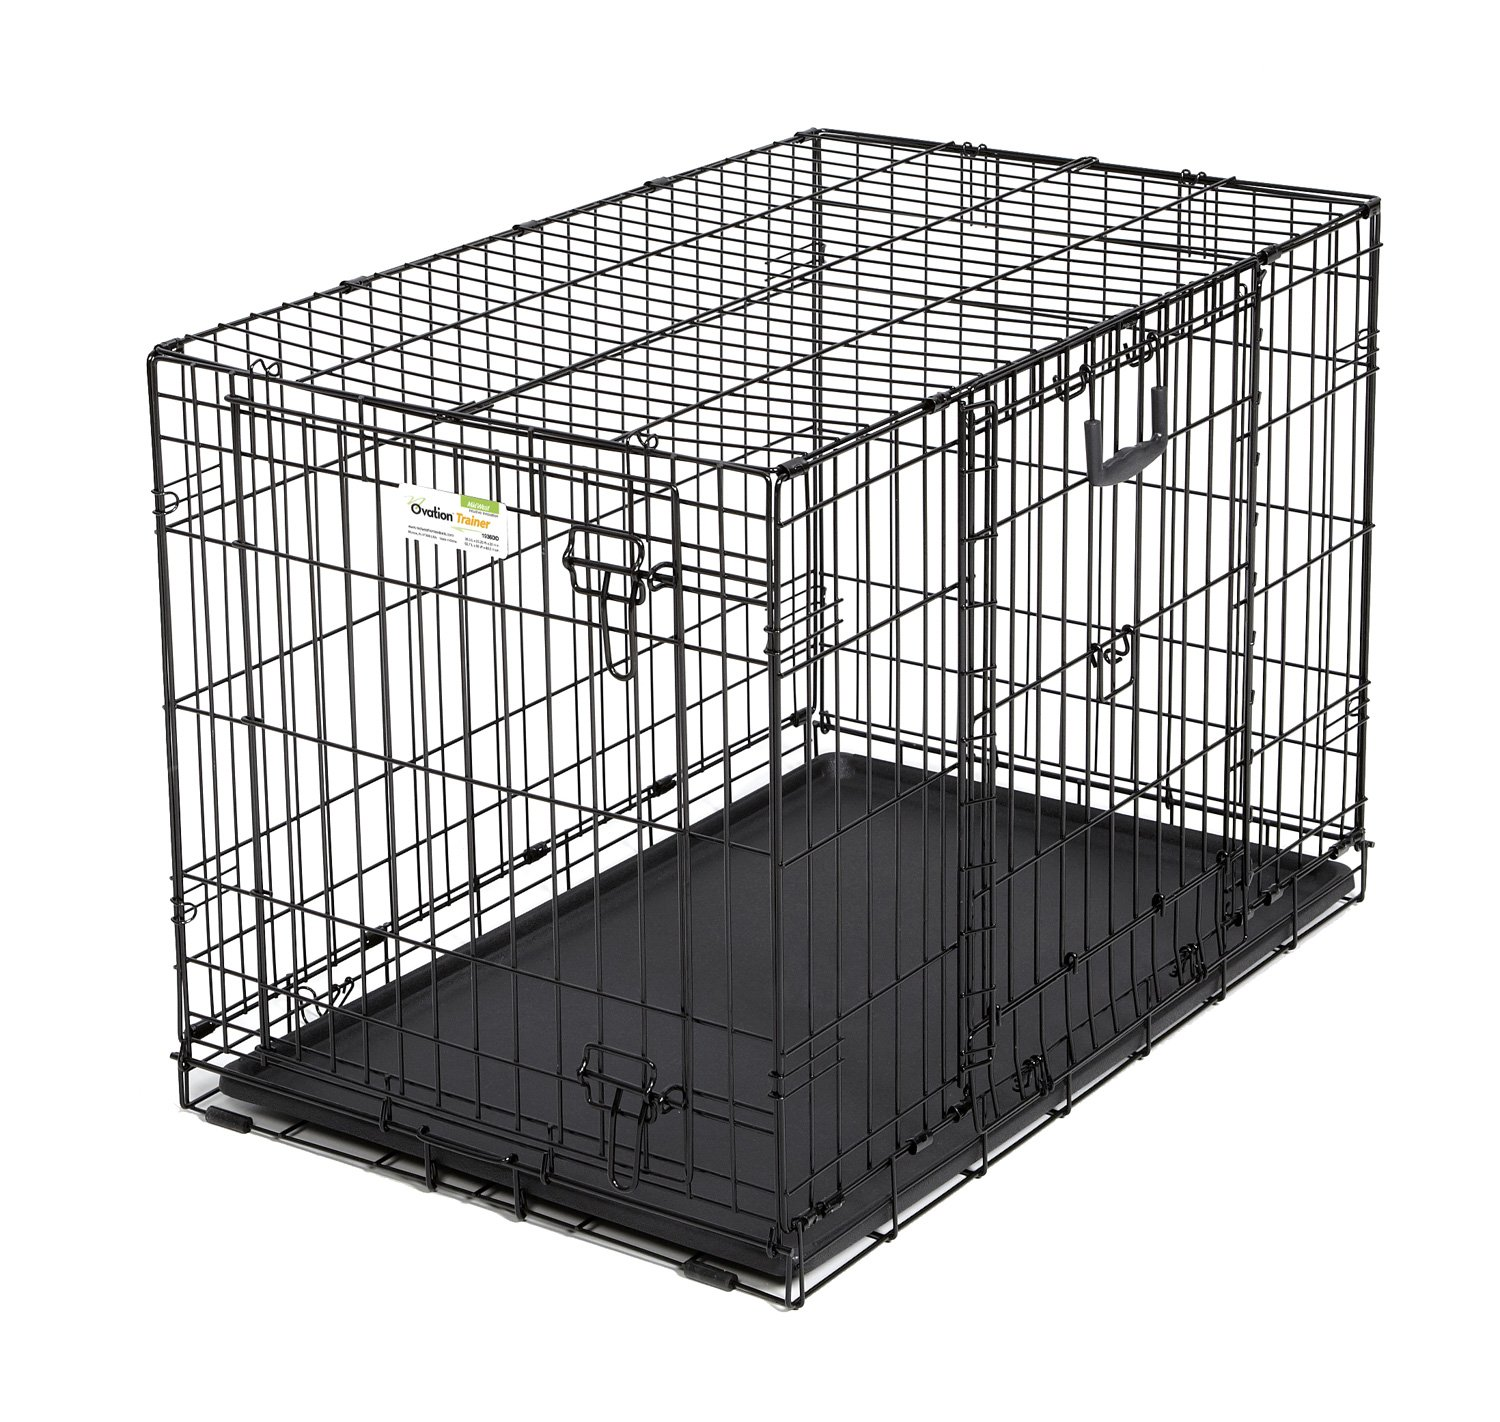 amazoncom  midwest homes for pets ovation double door dog crate  - amazoncom  midwest homes for pets ovation double door dog crate inch pet supplies